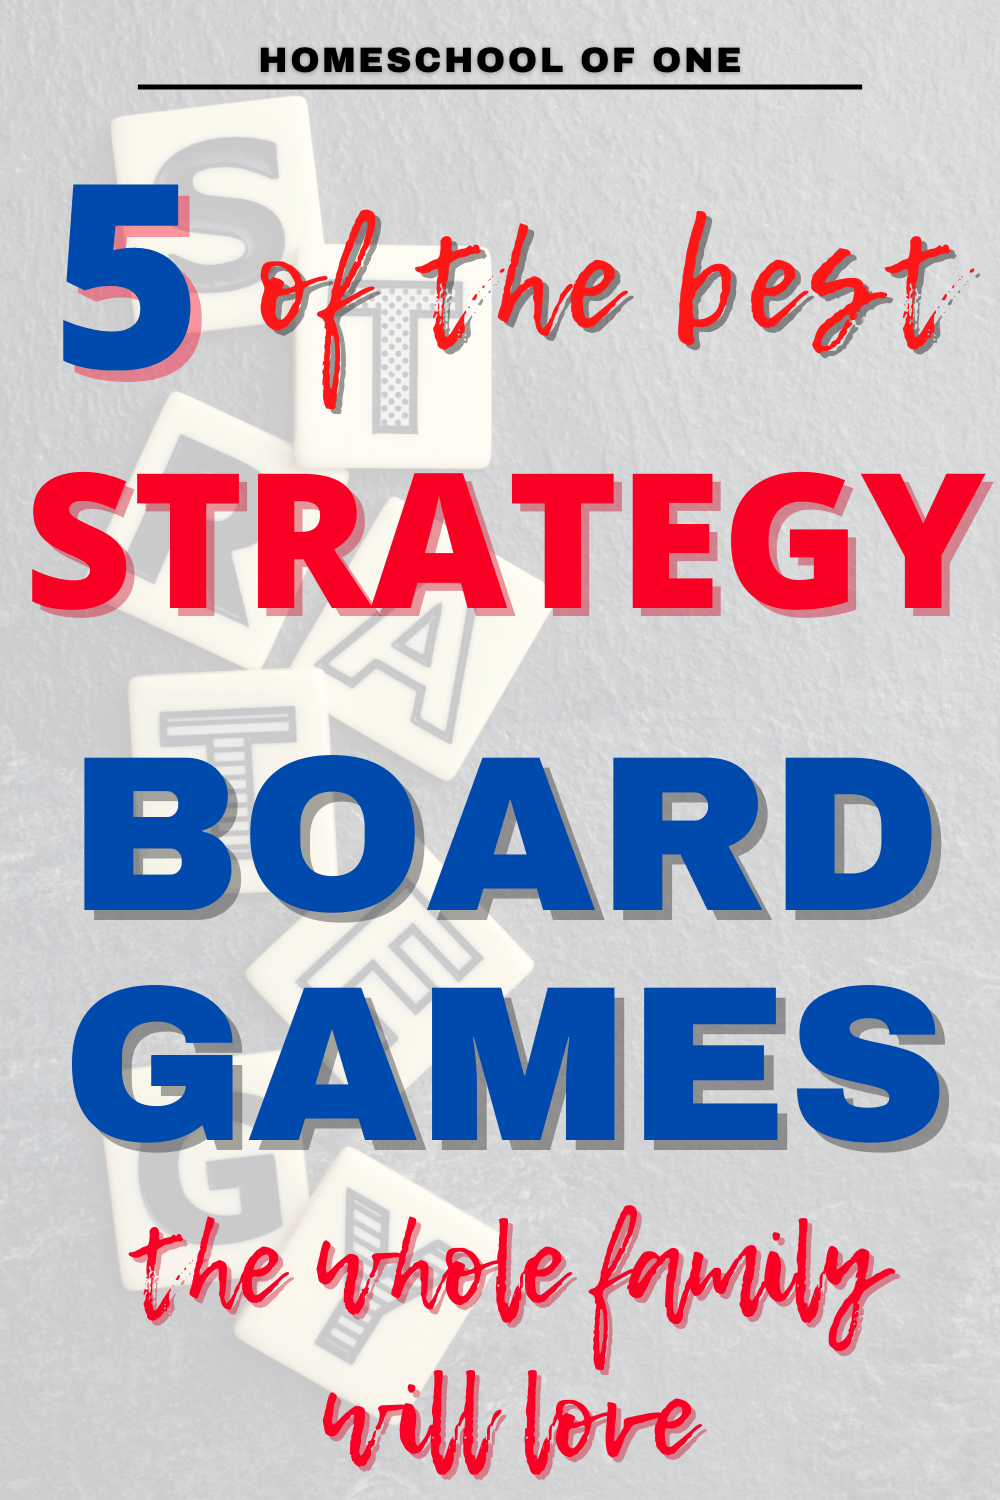 5 of the very best Strategy board games you can enjoy with the whole family, perfect for homeschooling families #boardgames